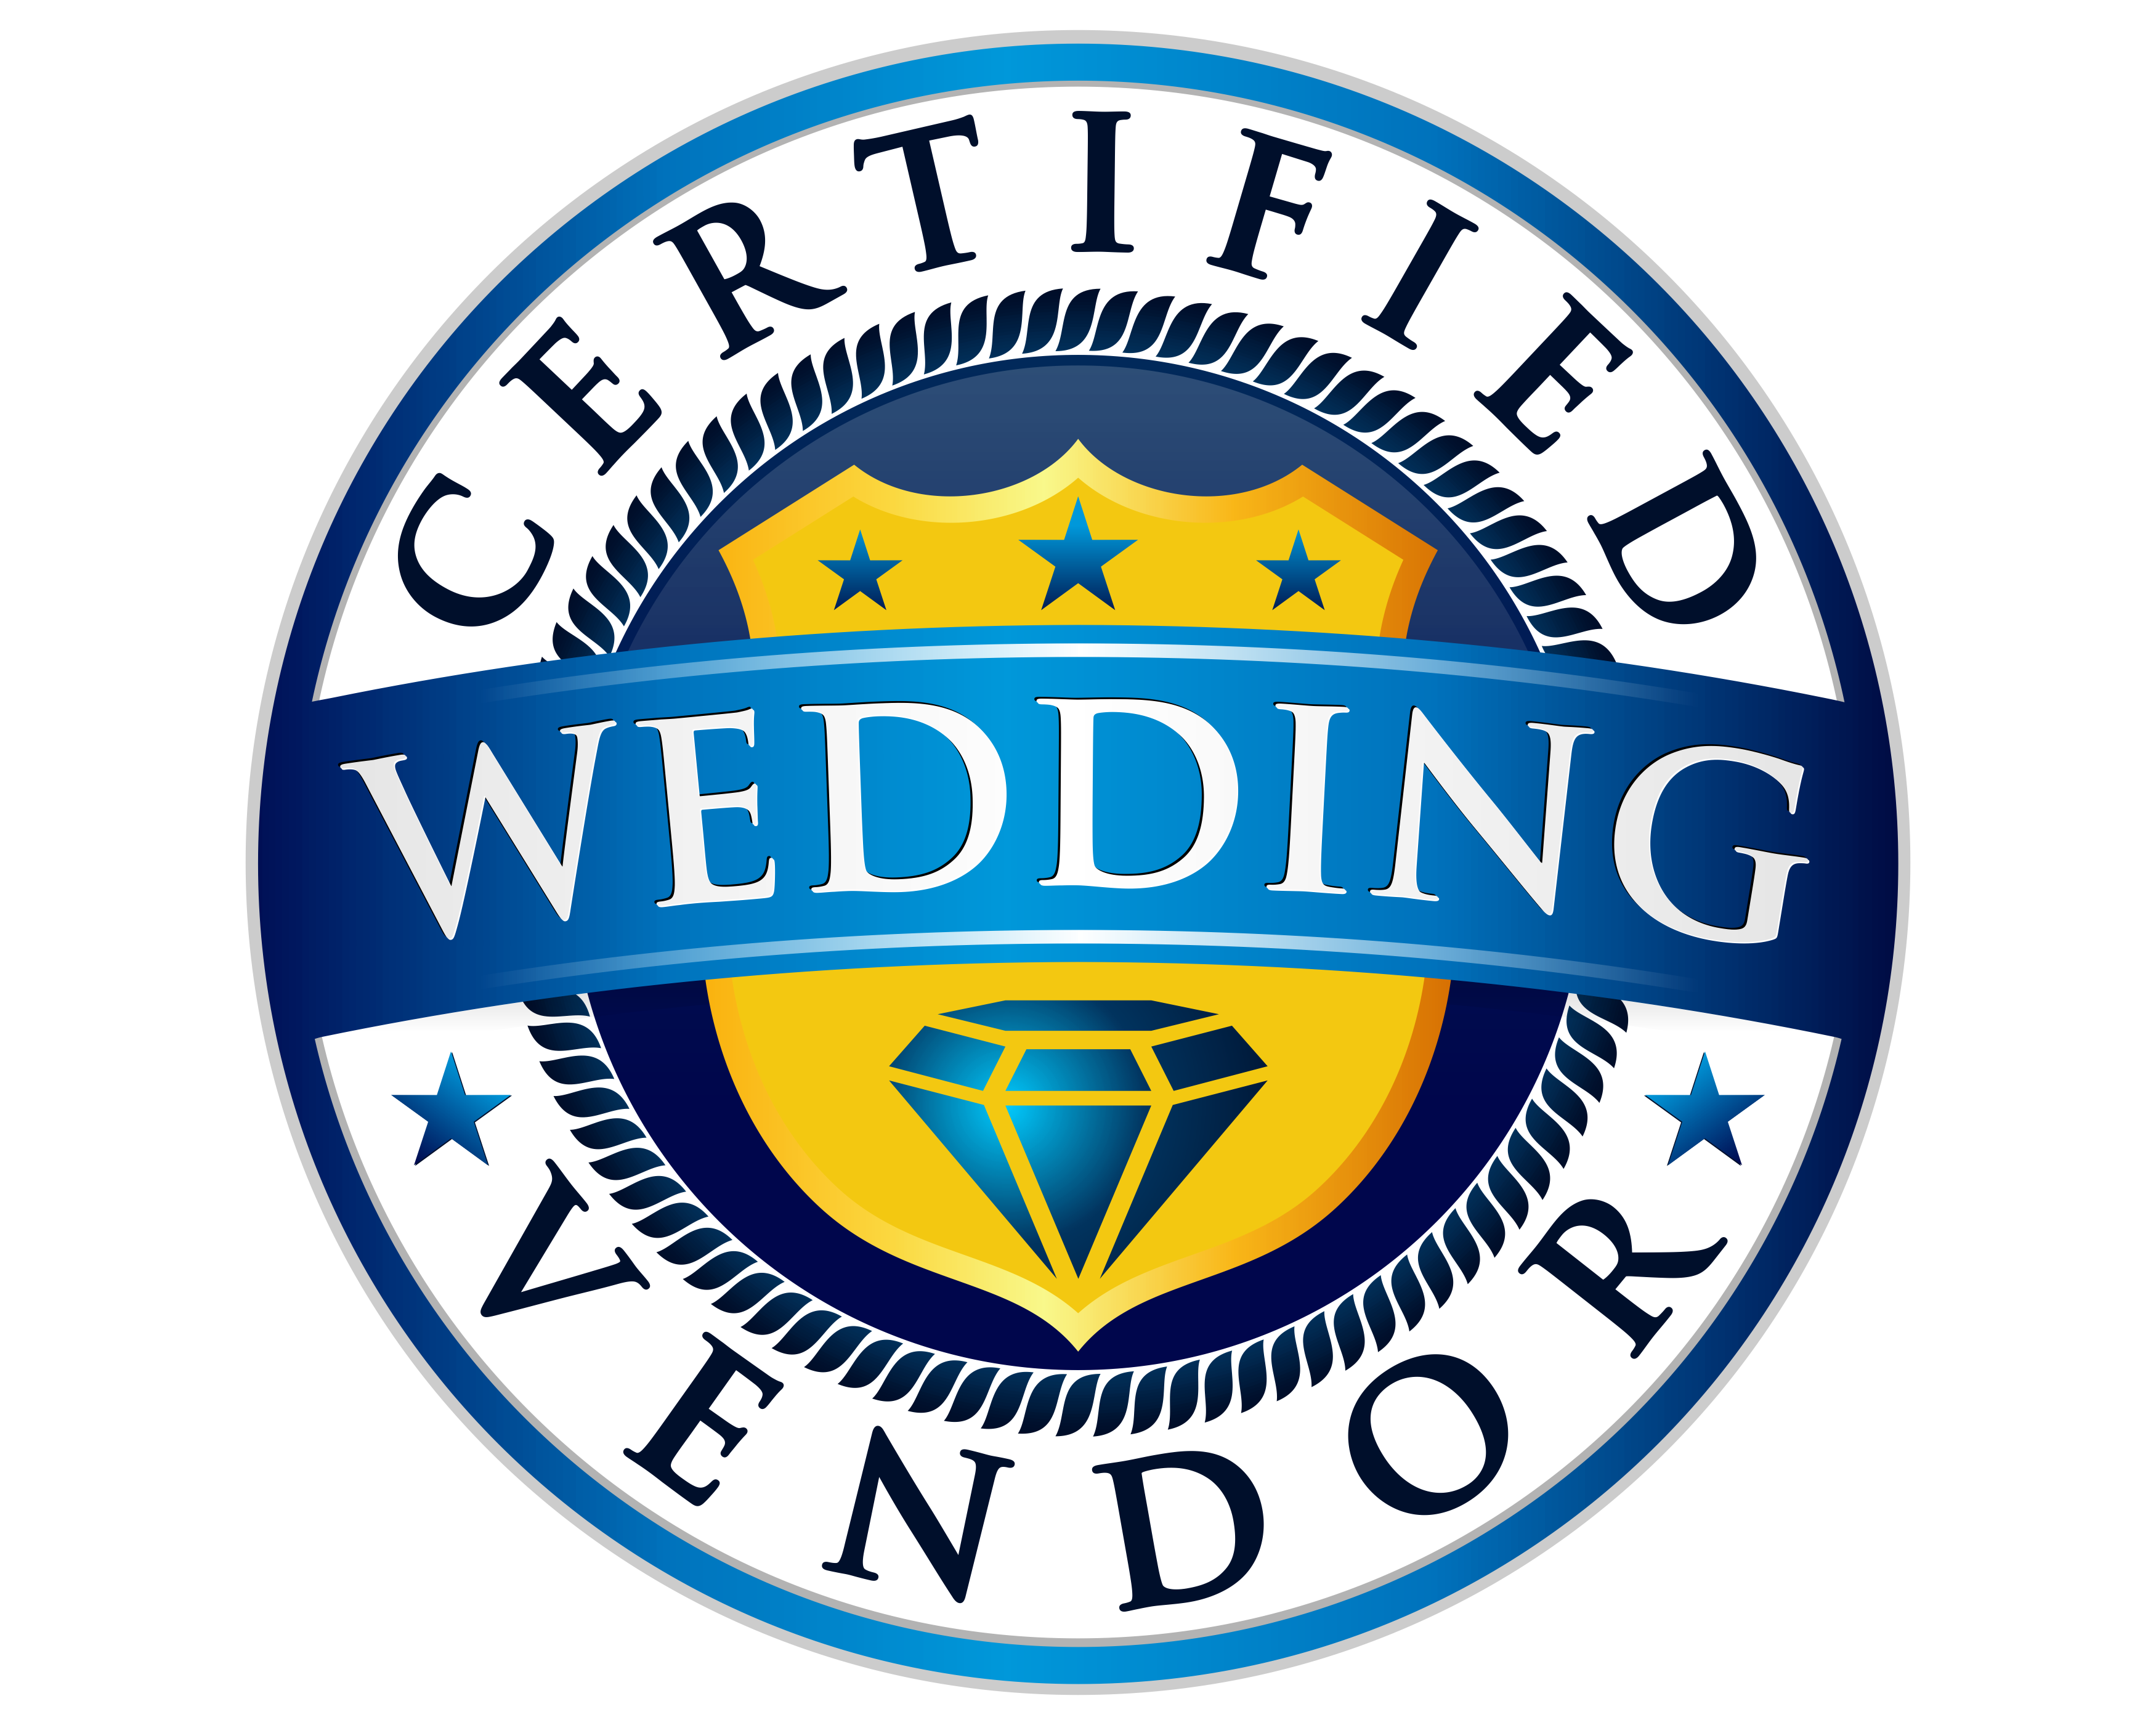 Certified Wedding Vendor Seal